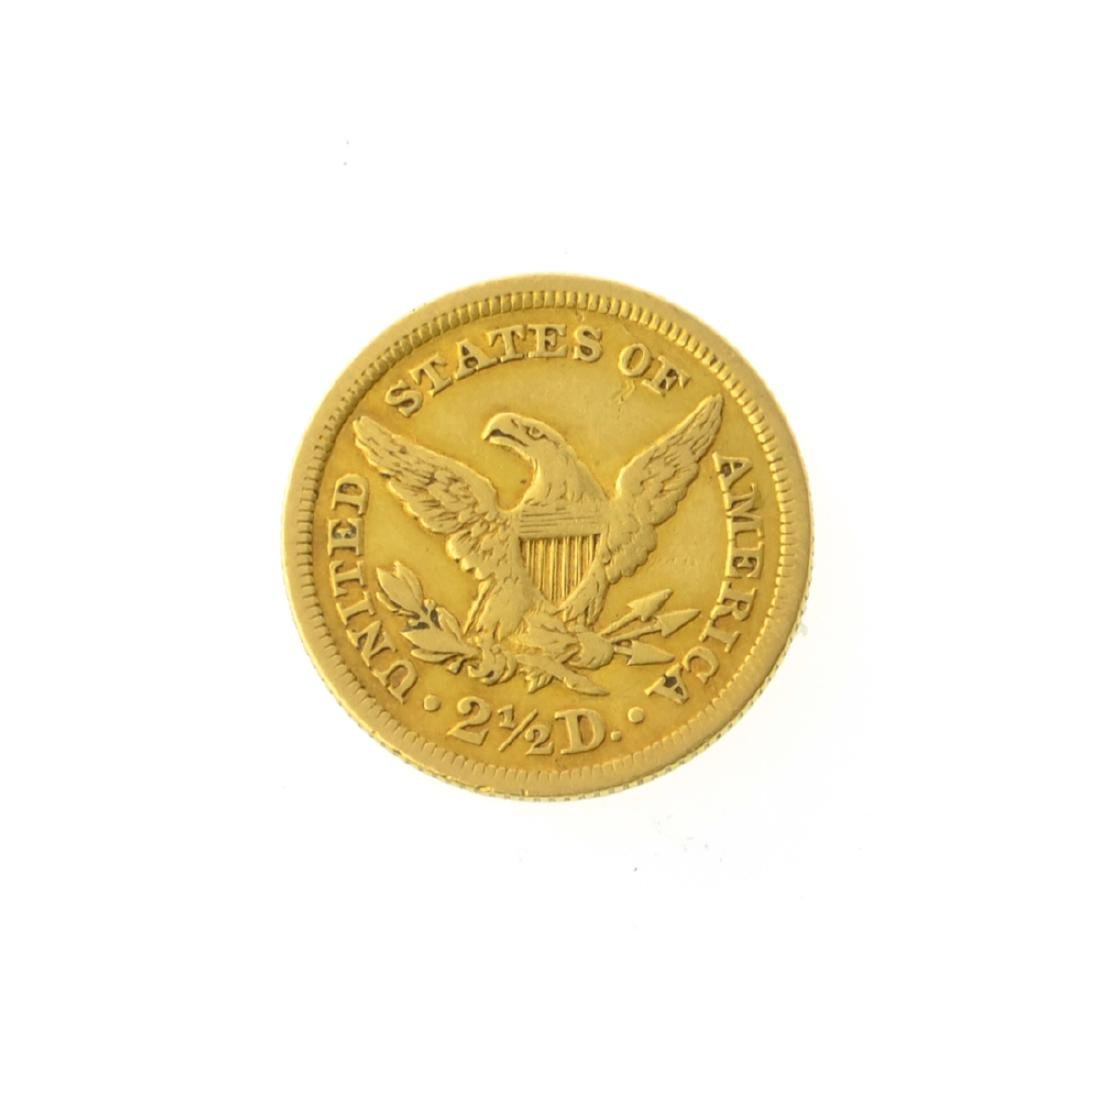 *1853 $2.50 U.S. Liberty Head Gold Coin (JG-JWJ) - 2